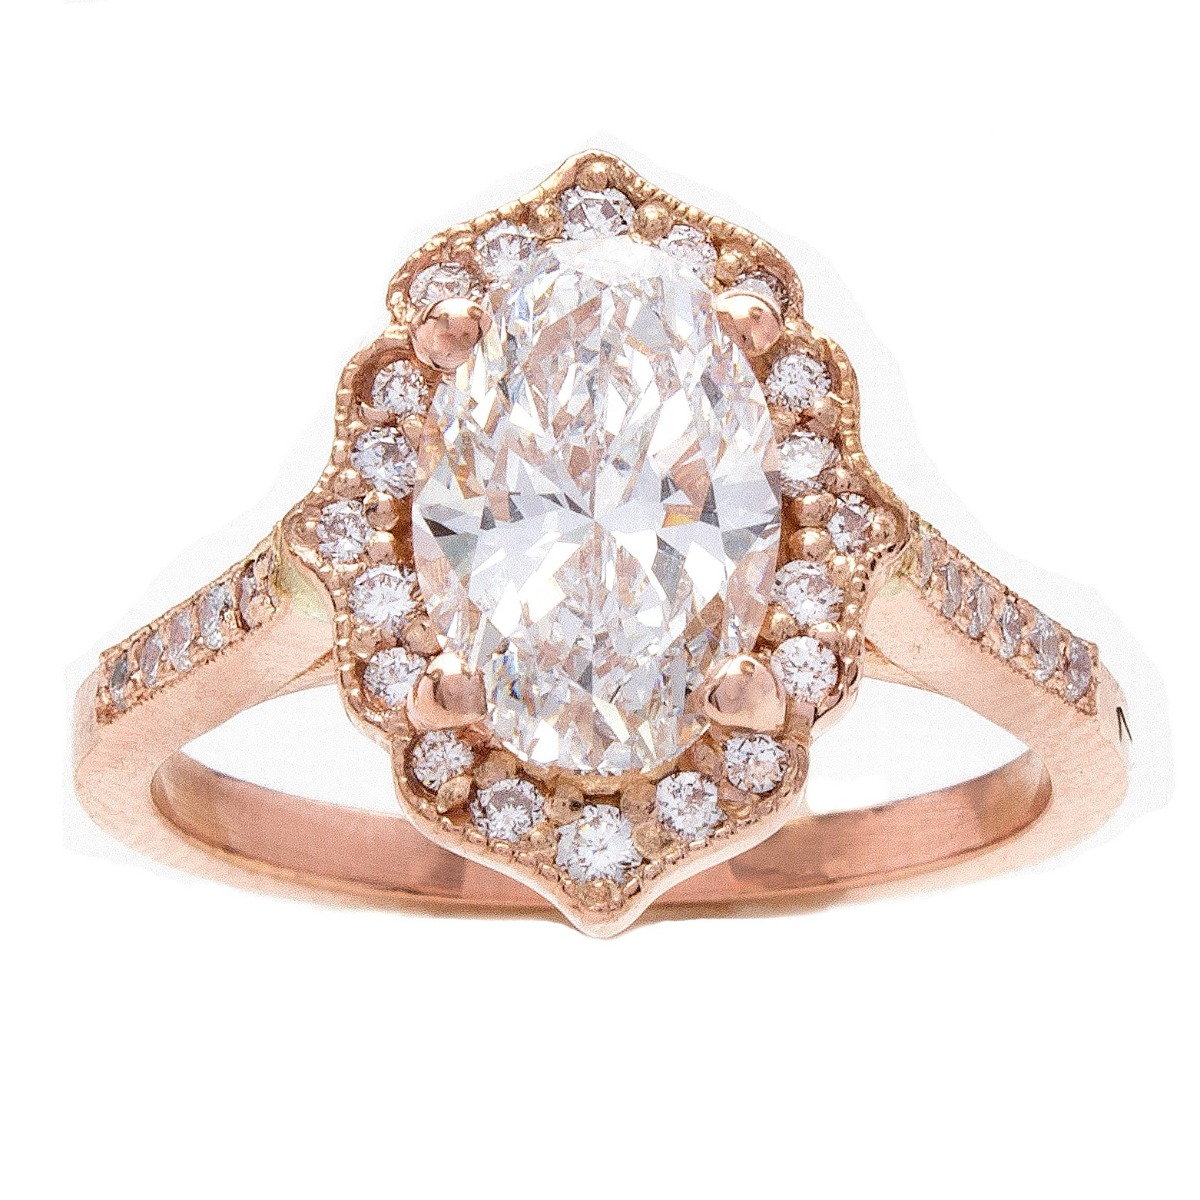 Custom Vintage Inspired Diamond Engagement Ring